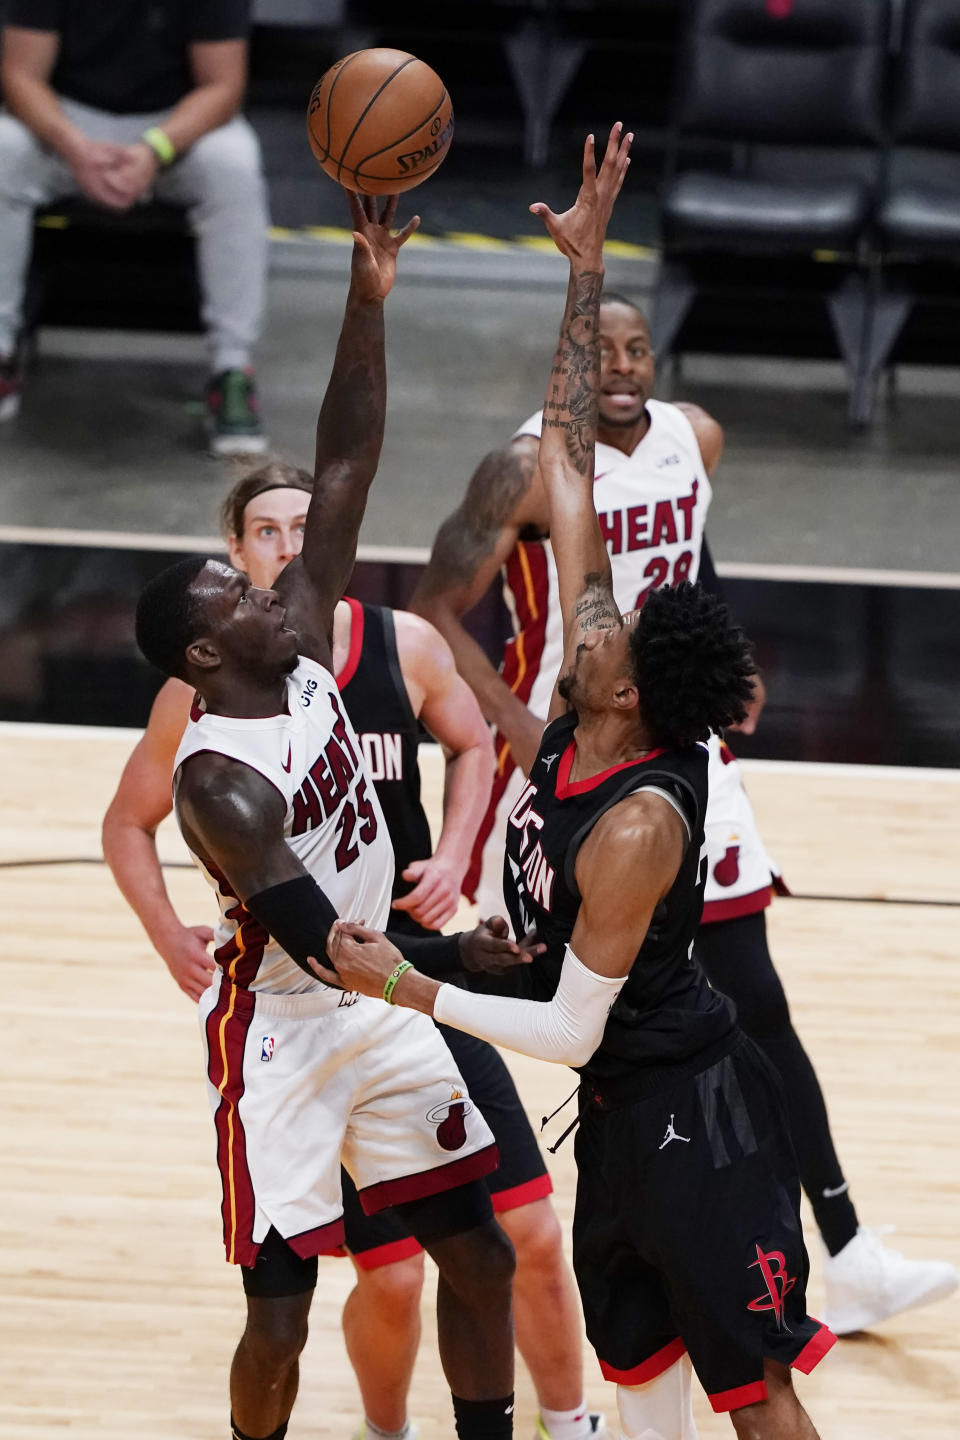 Miami Heat guard Kendrick Nunn (25) drives to the basket as Houston Rockets center Christian Wood defends, during the second half of an NBA basketball game, Monday, April 19, 2021, in Miami. (AP Photo/Marta Lavandier)